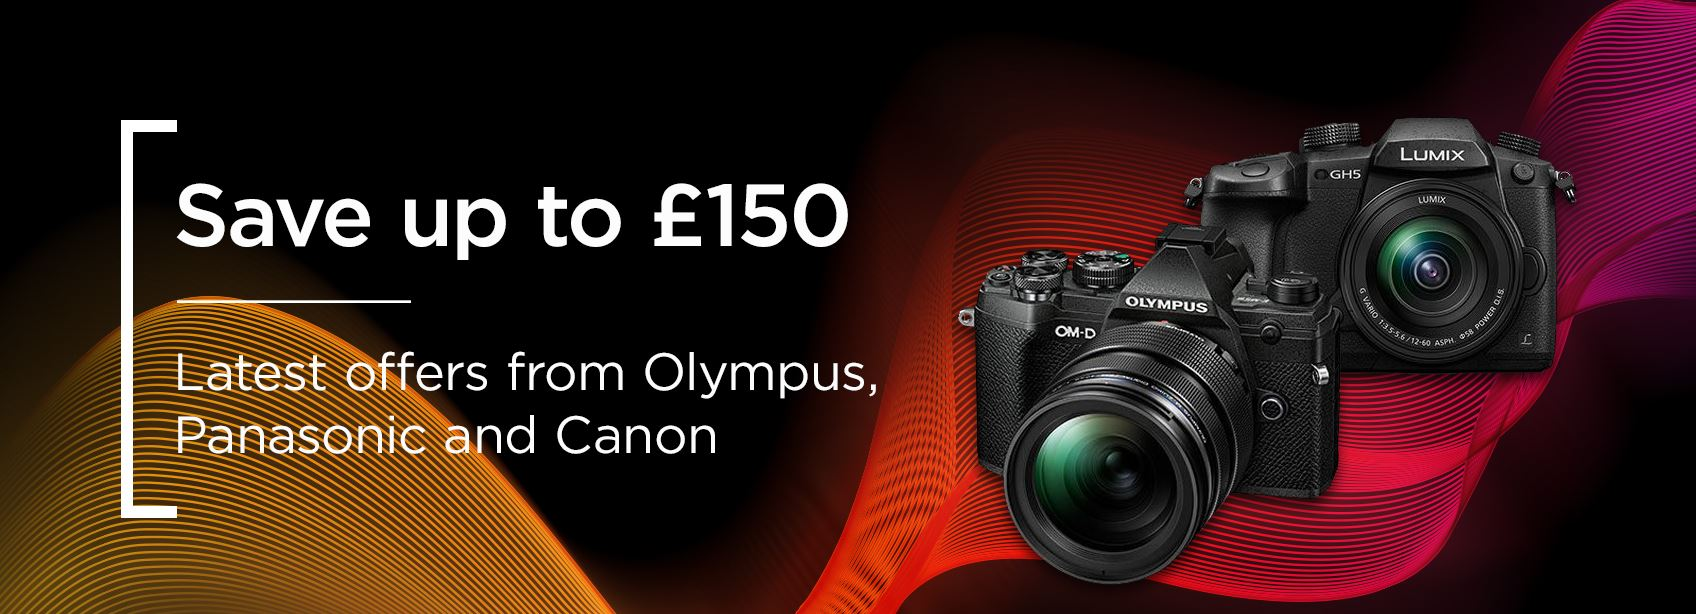 Save up to £150 - Latest offers from Olympus, Panasonic and Canon